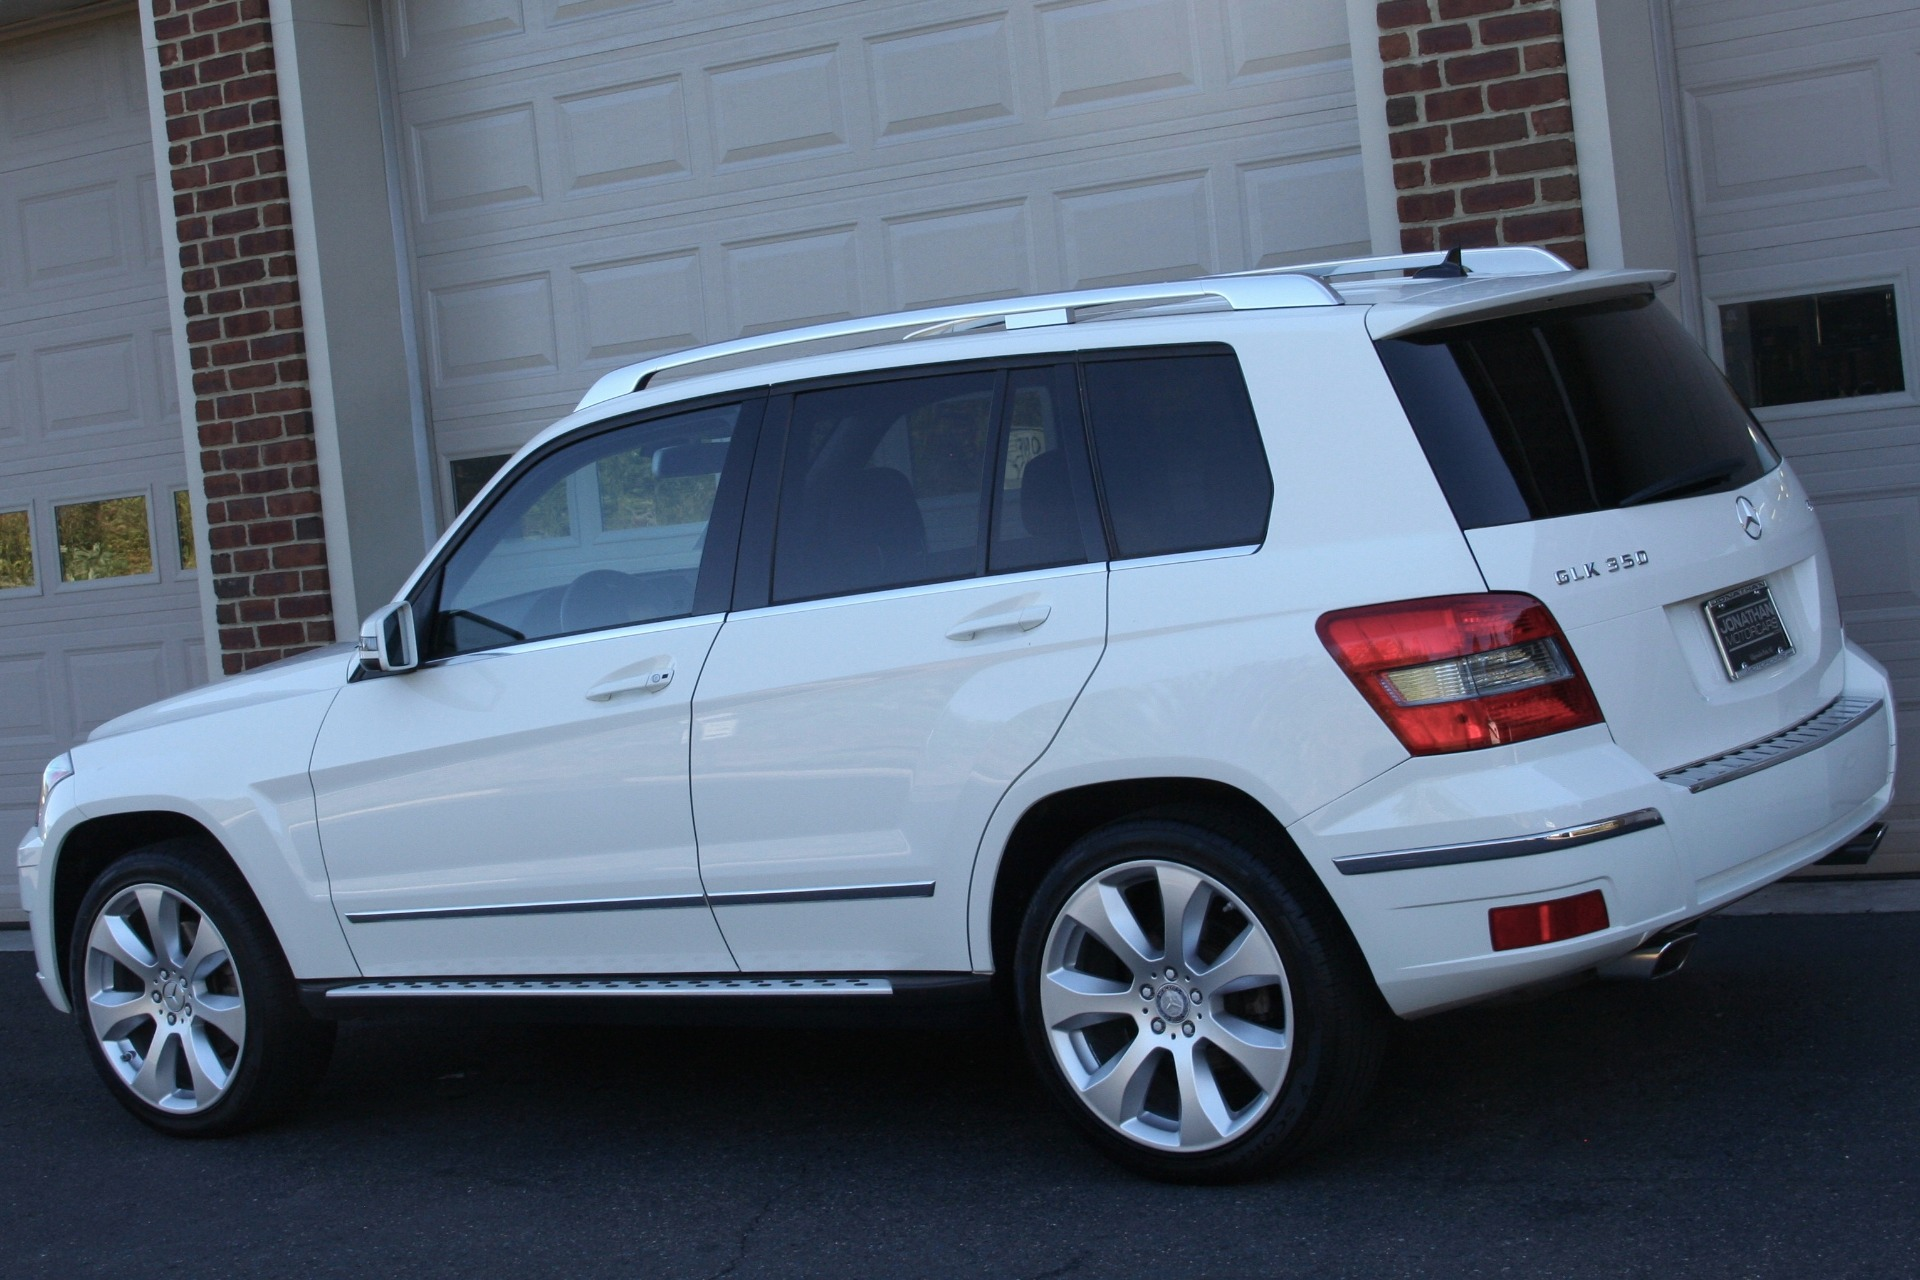 2010 mercedes benz glk glk 350 4matic stock 338575 for sale near edgewater park nj nj. Black Bedroom Furniture Sets. Home Design Ideas